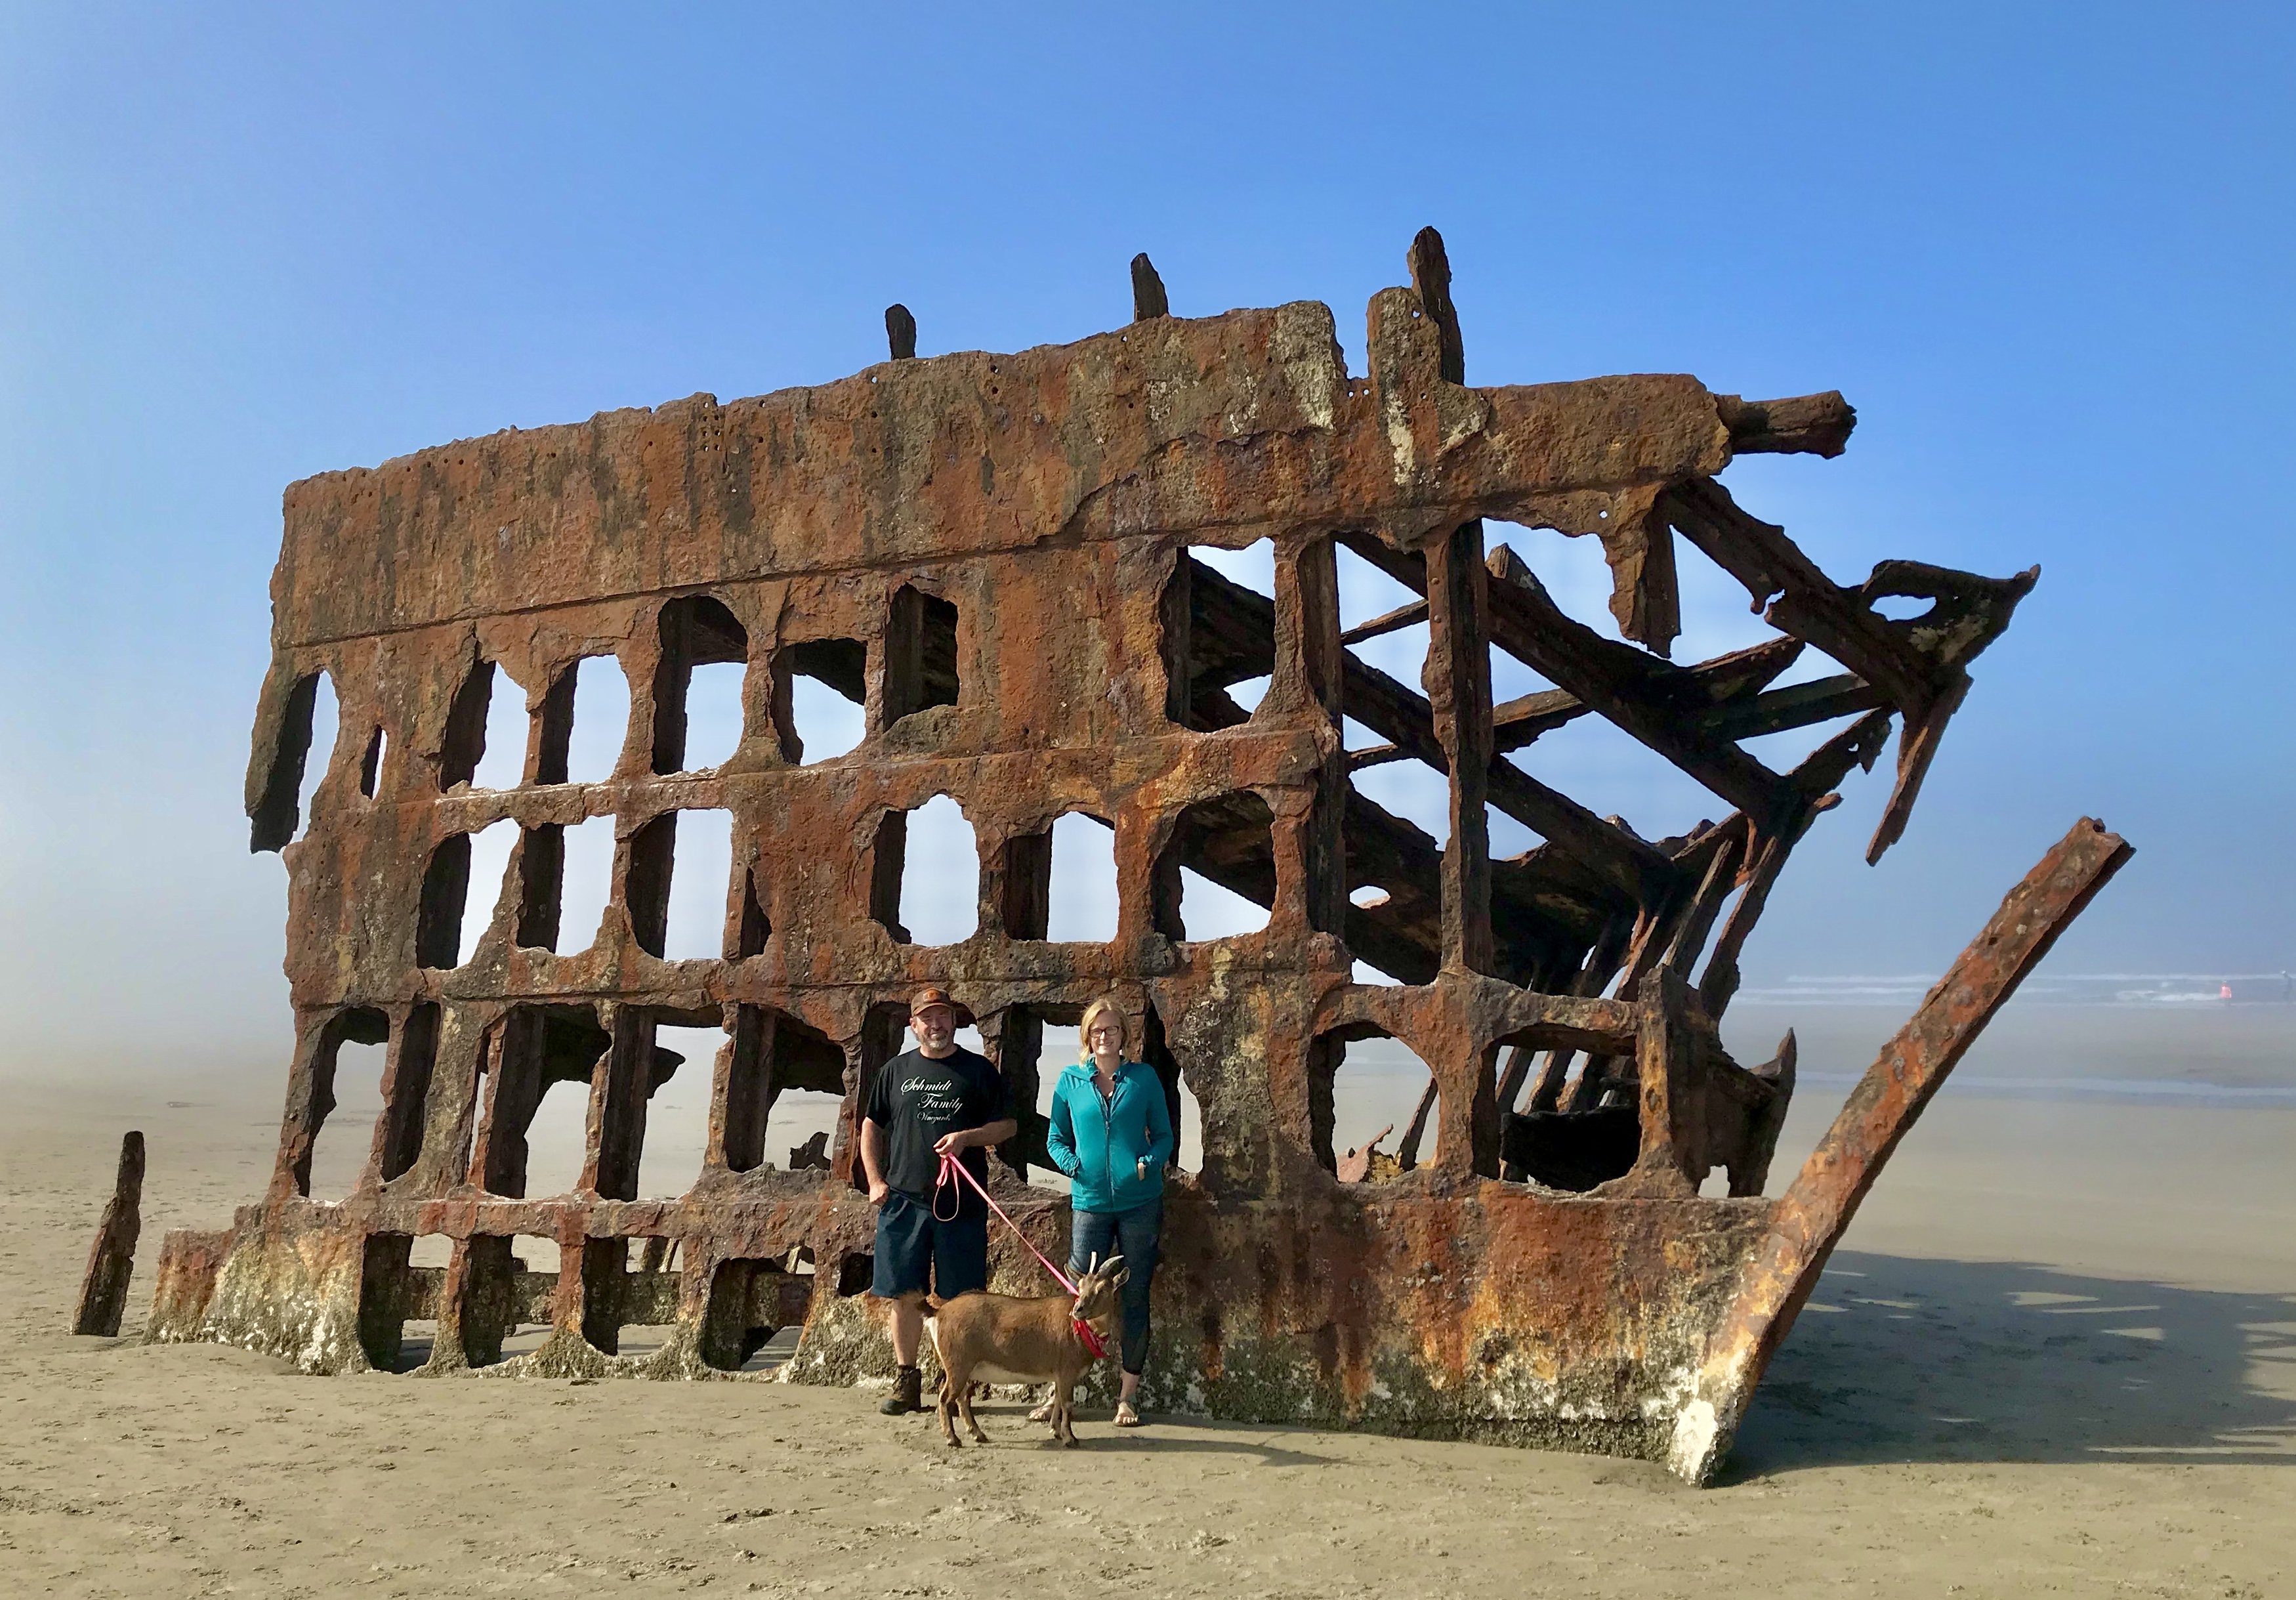 Two people and a goat stand in front of the hulk of a damaged ship.